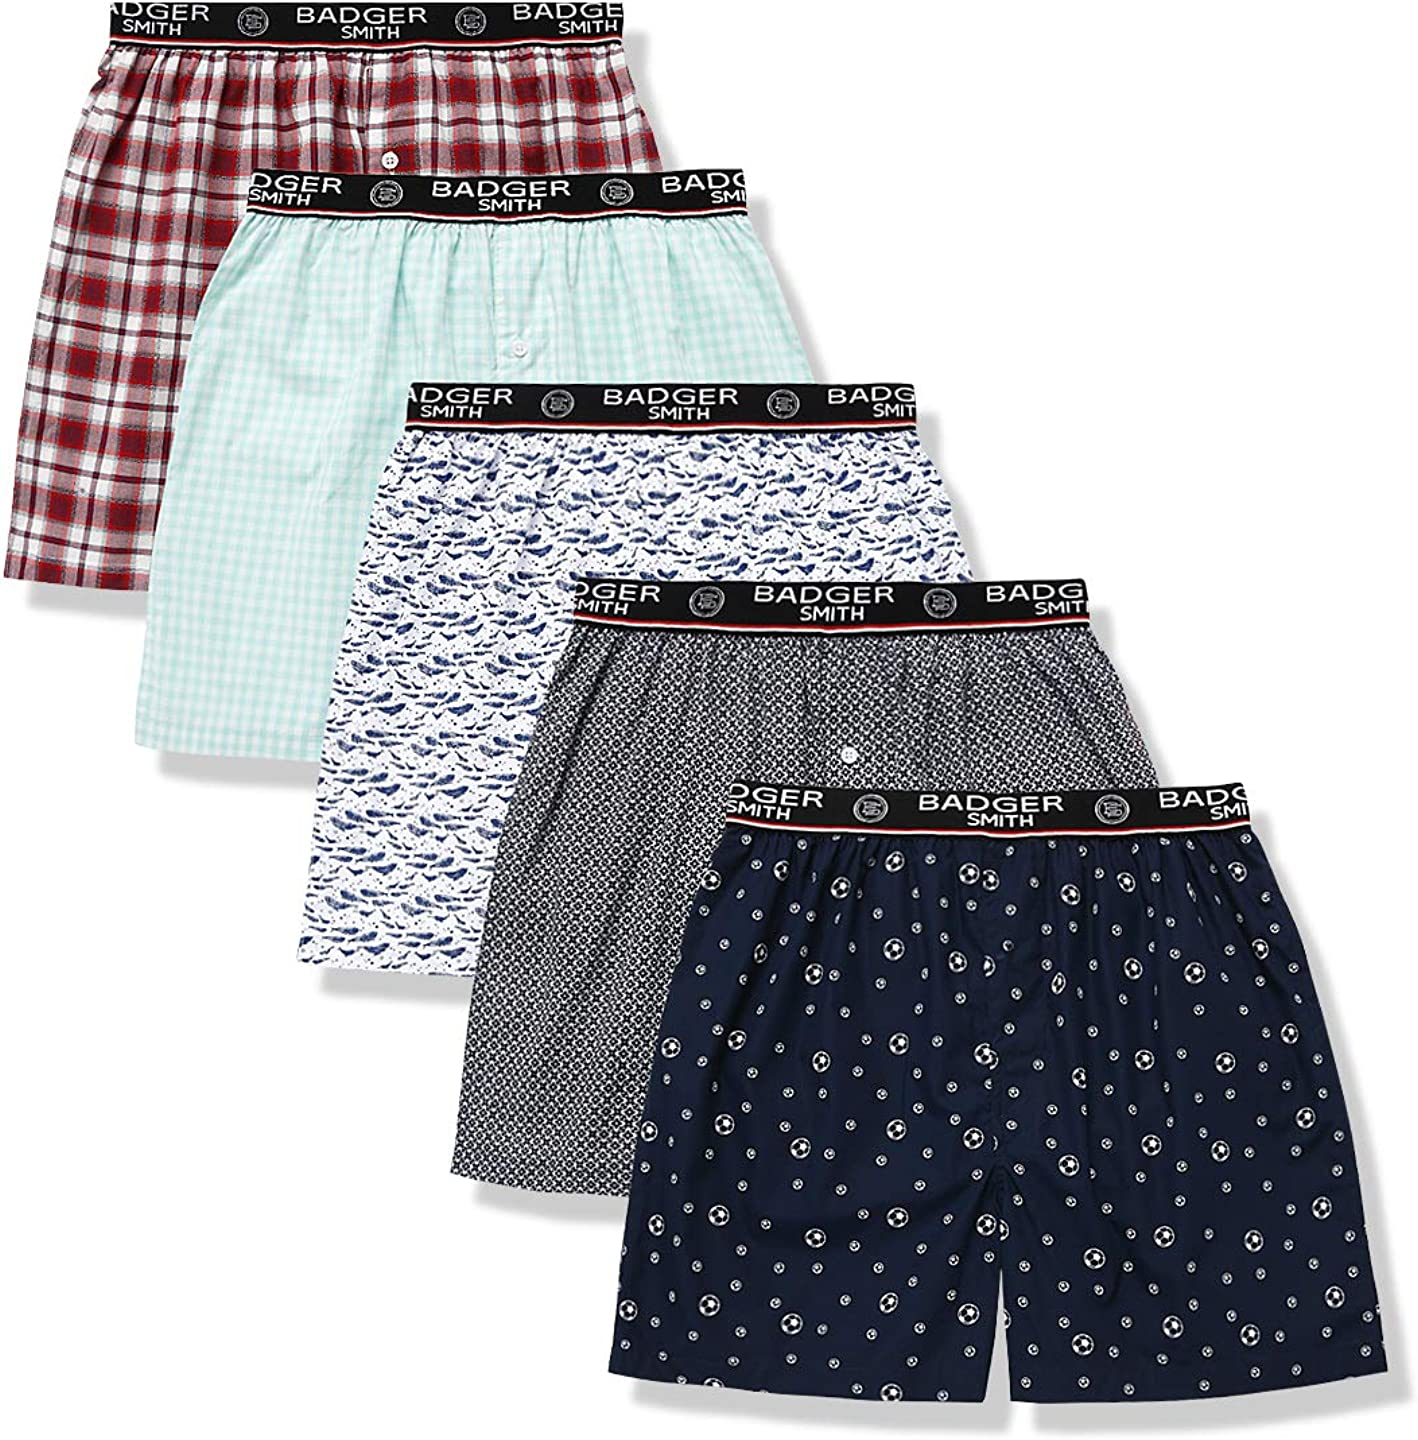 Pack 100/% Cotton Print and Plaid Multicolor Boxers Badger Smith Mens 5